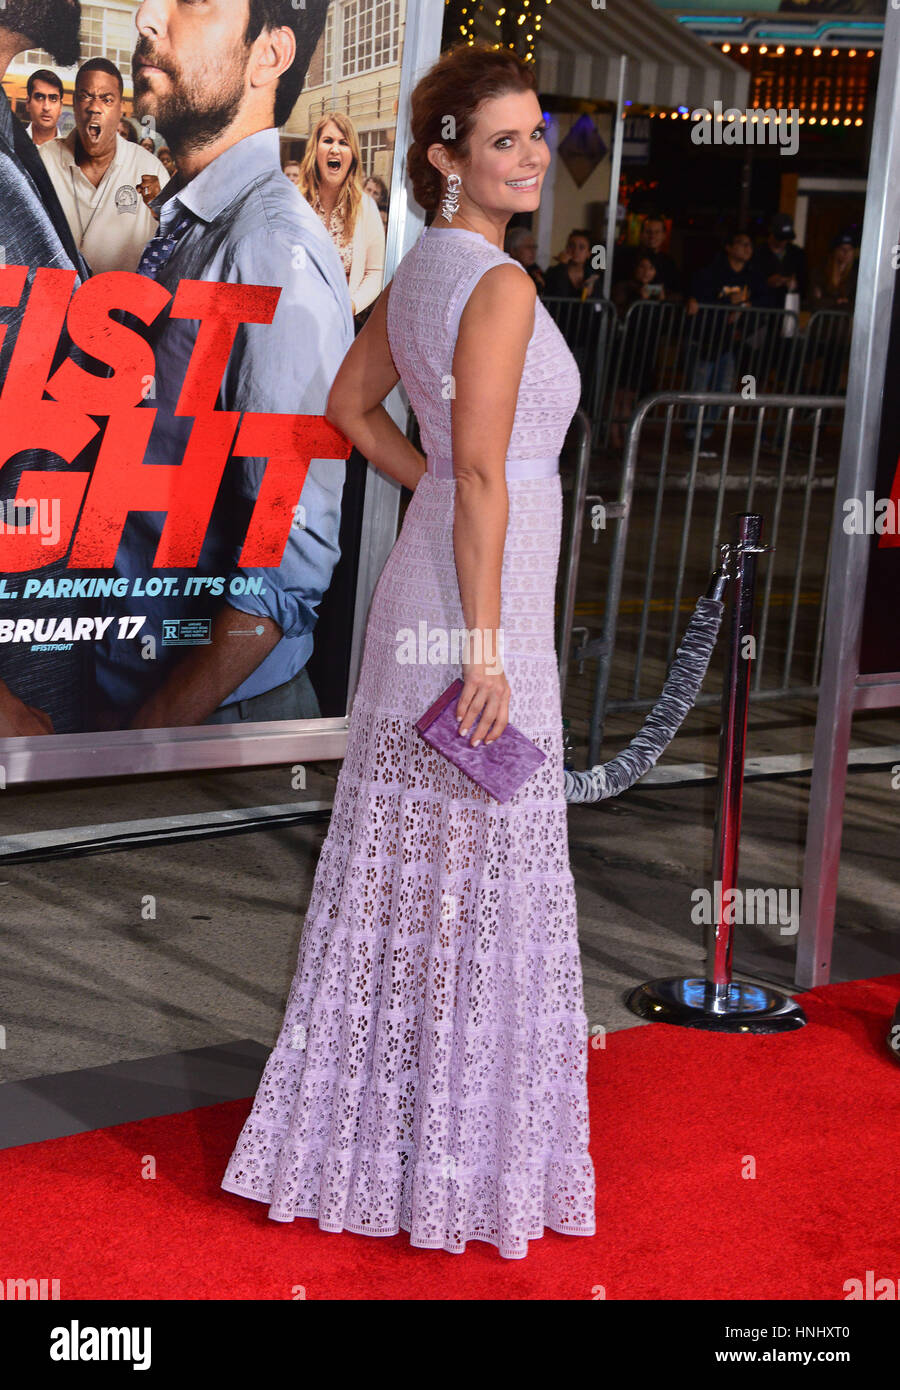 Los Angeles, USA. 13th February 2017. Cassi Colvin 066 arriving at the Fist Fight Premiere at the Westwood Village - Stock Image